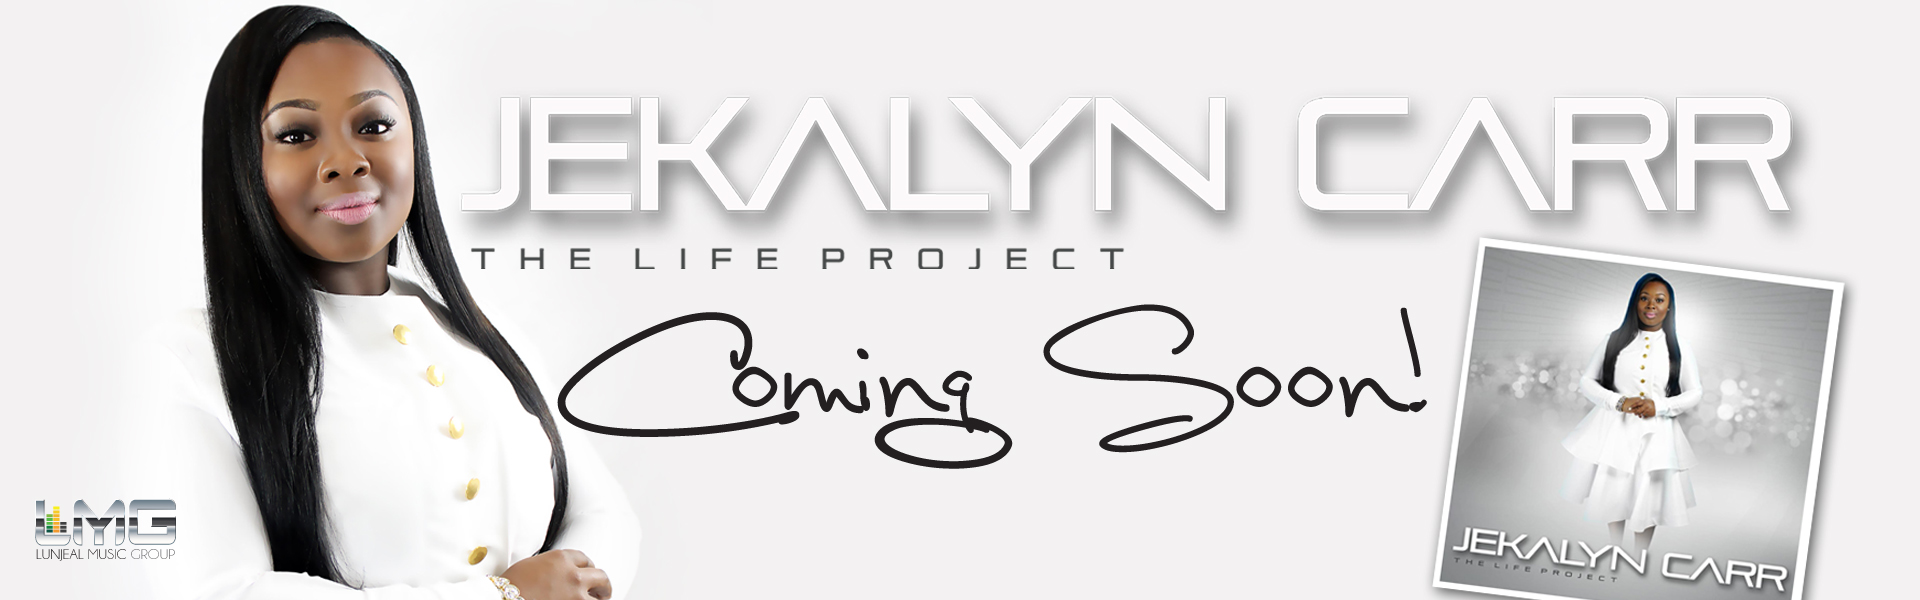 JEKALYN-SLIDE-LIFE-PROJECT